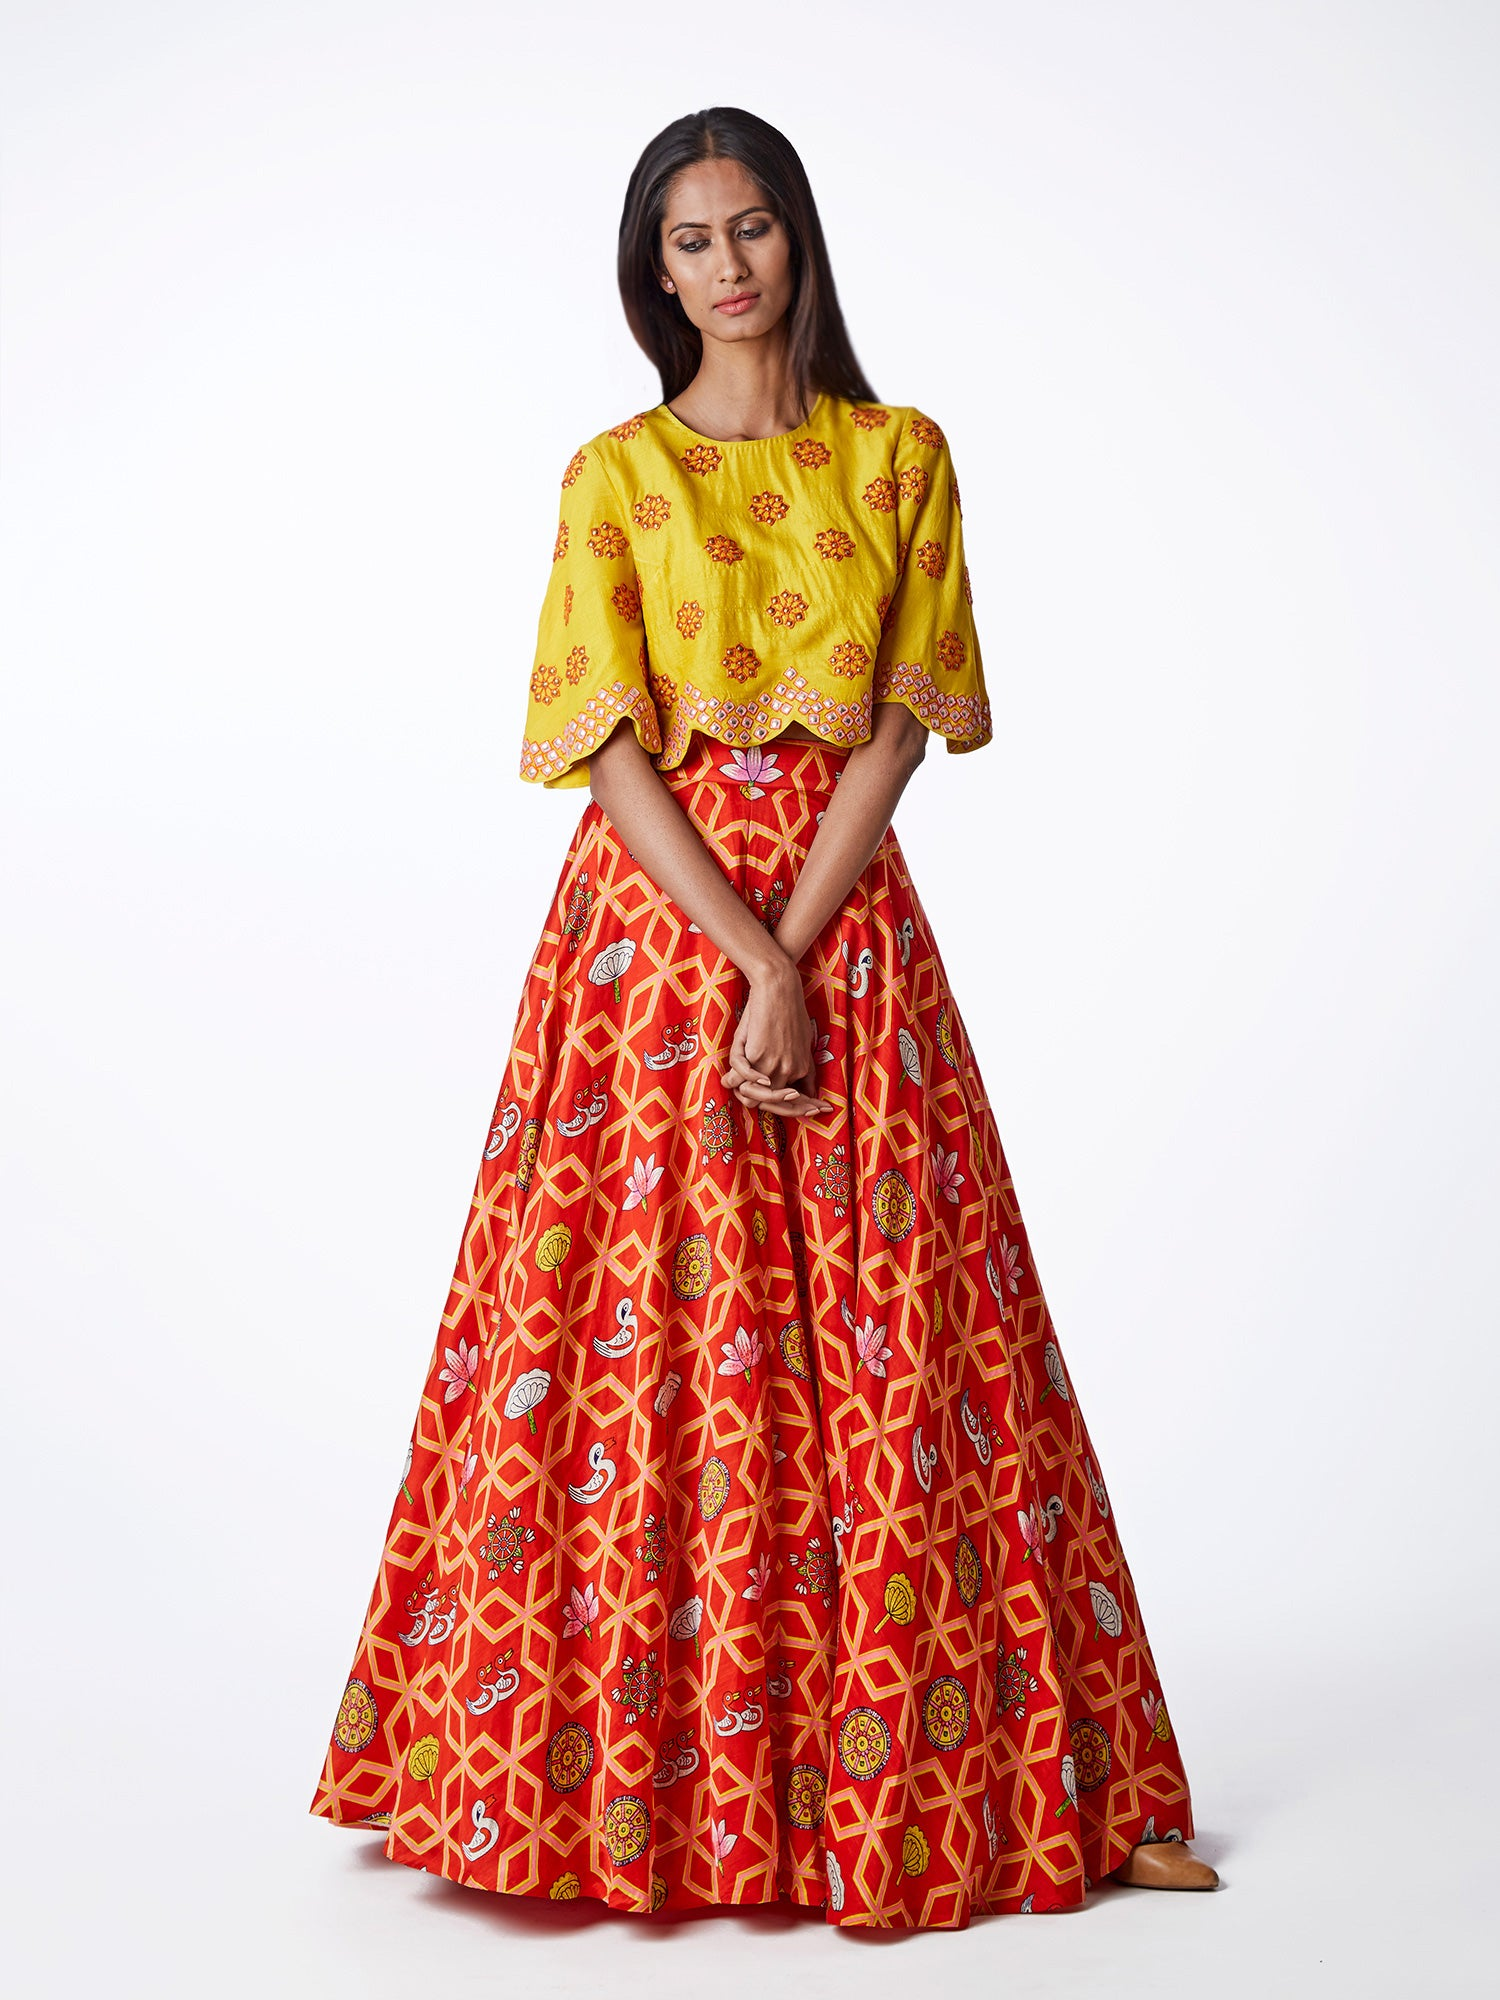 red, yellow, embroidered, printed, silk, satin, lehenga, bridal, indianwedding, lehenga choli, blouse, swati vijaivargie